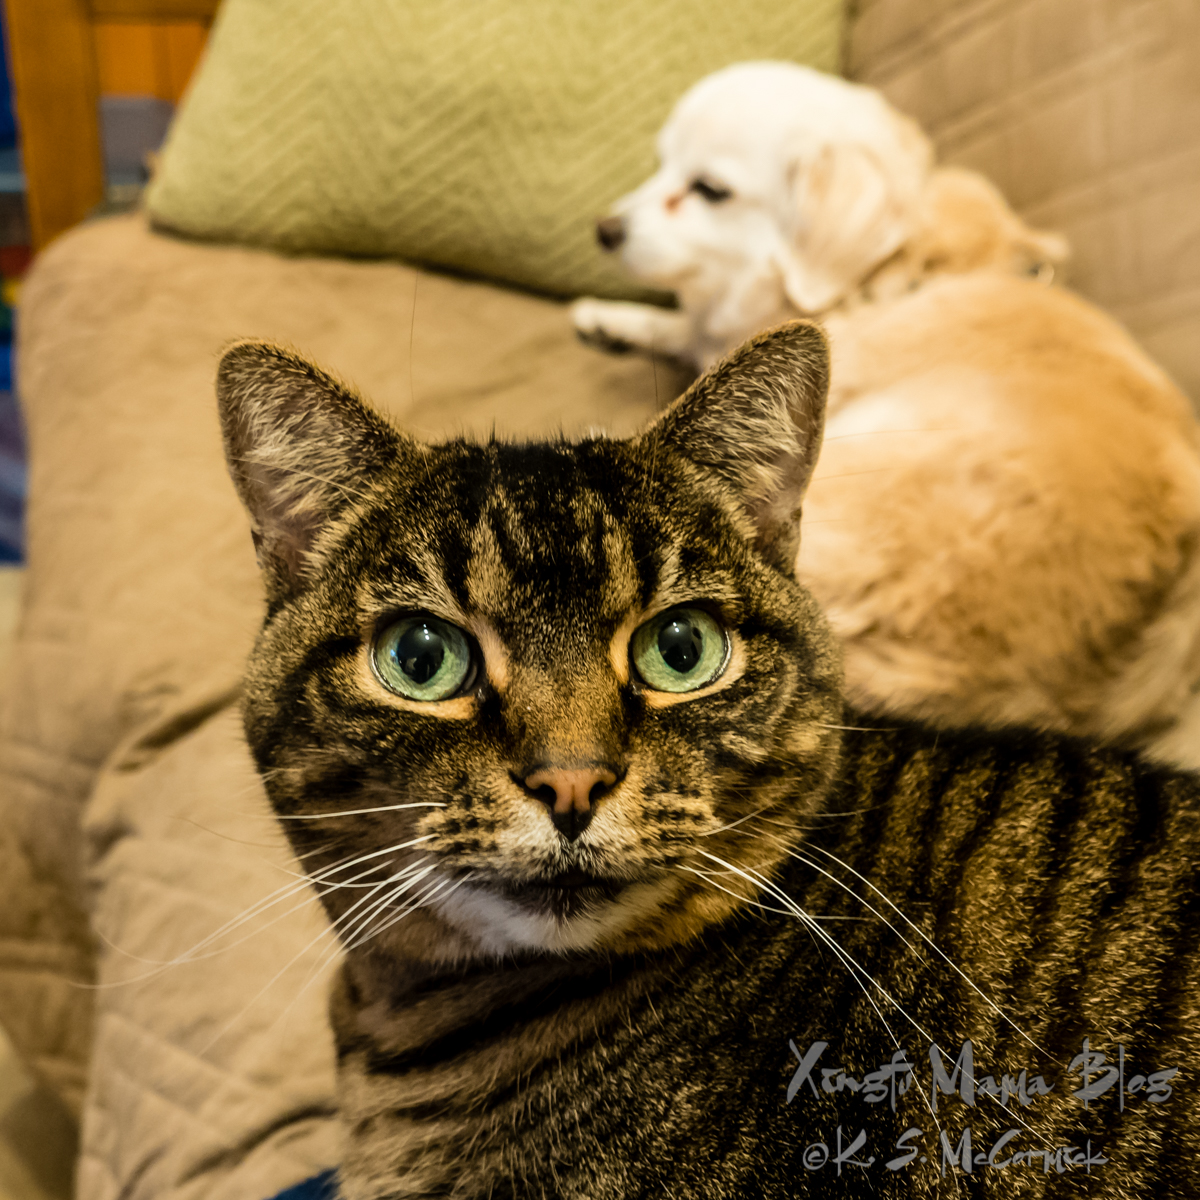 Brown and black tabby cat staring suspiciously at the camera.